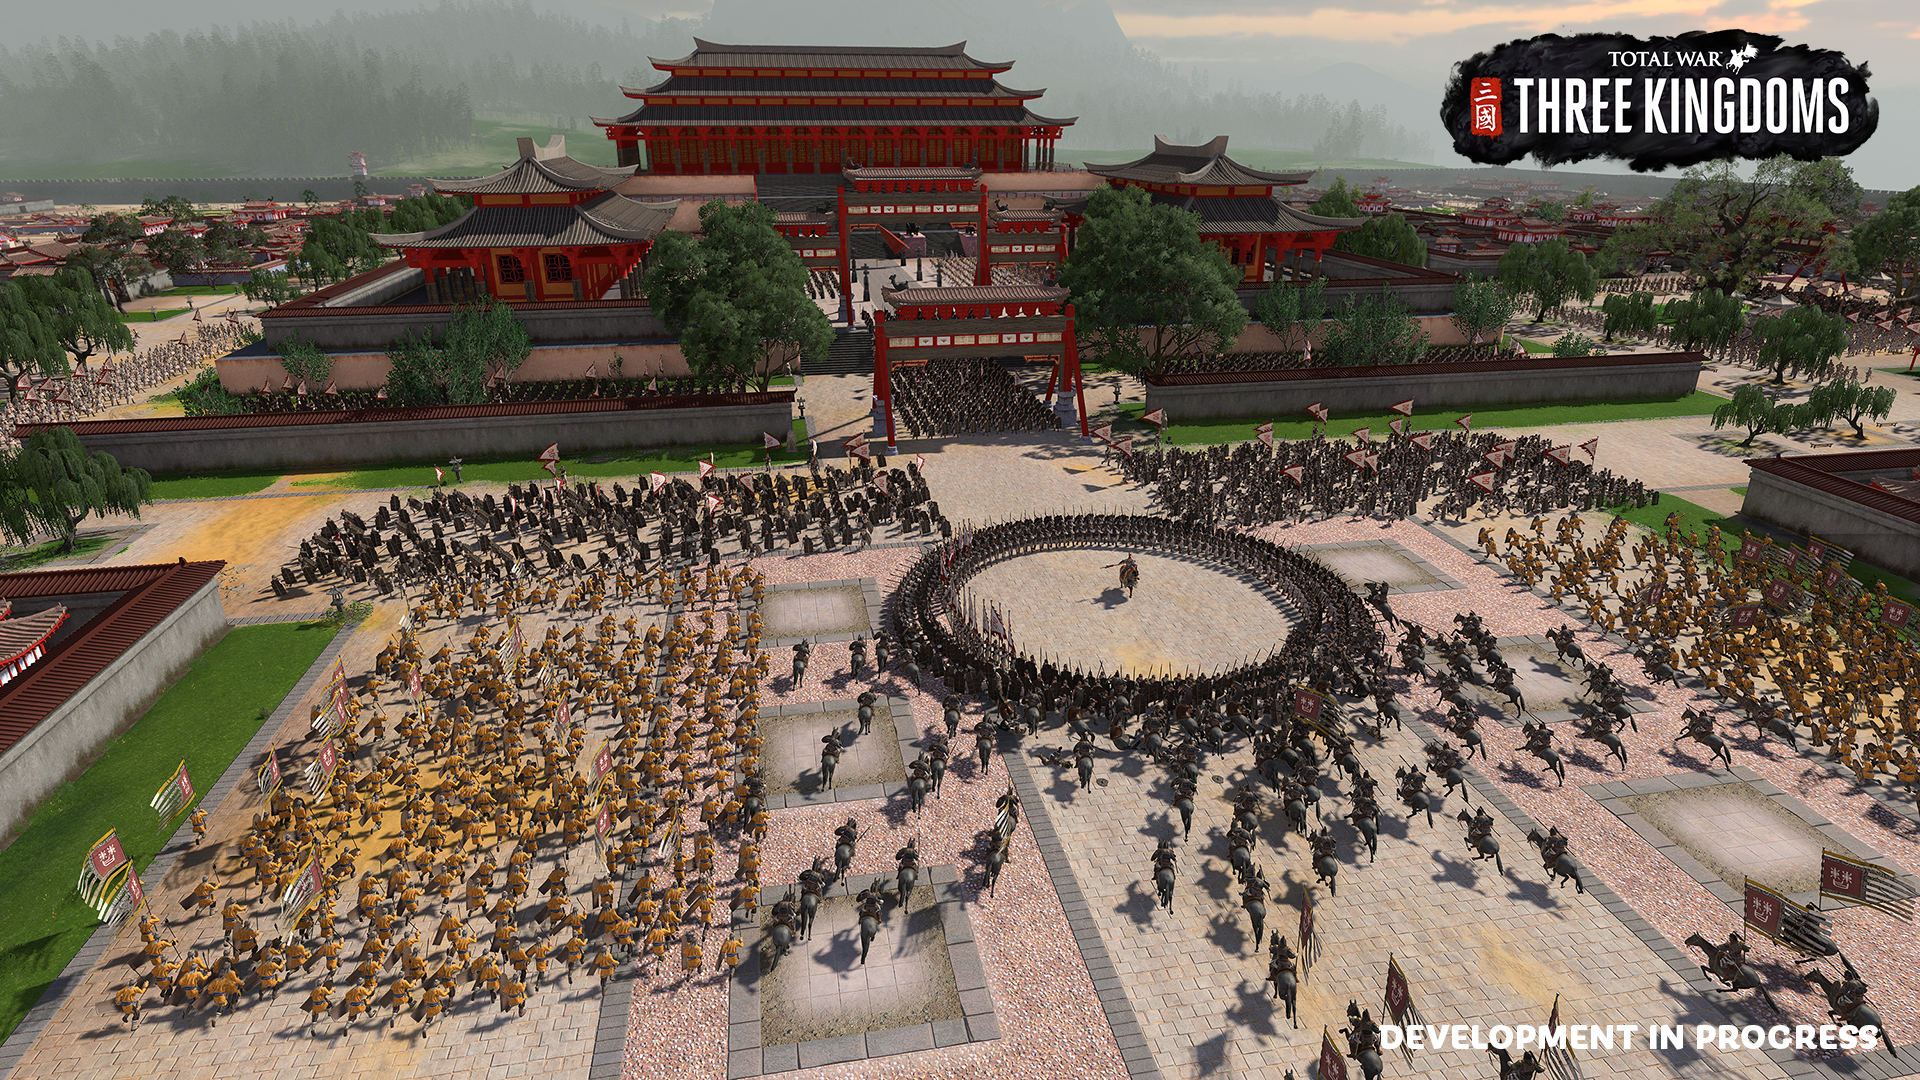 How 'Total War: Three Kingdoms' Aims to Kill the Devil in the